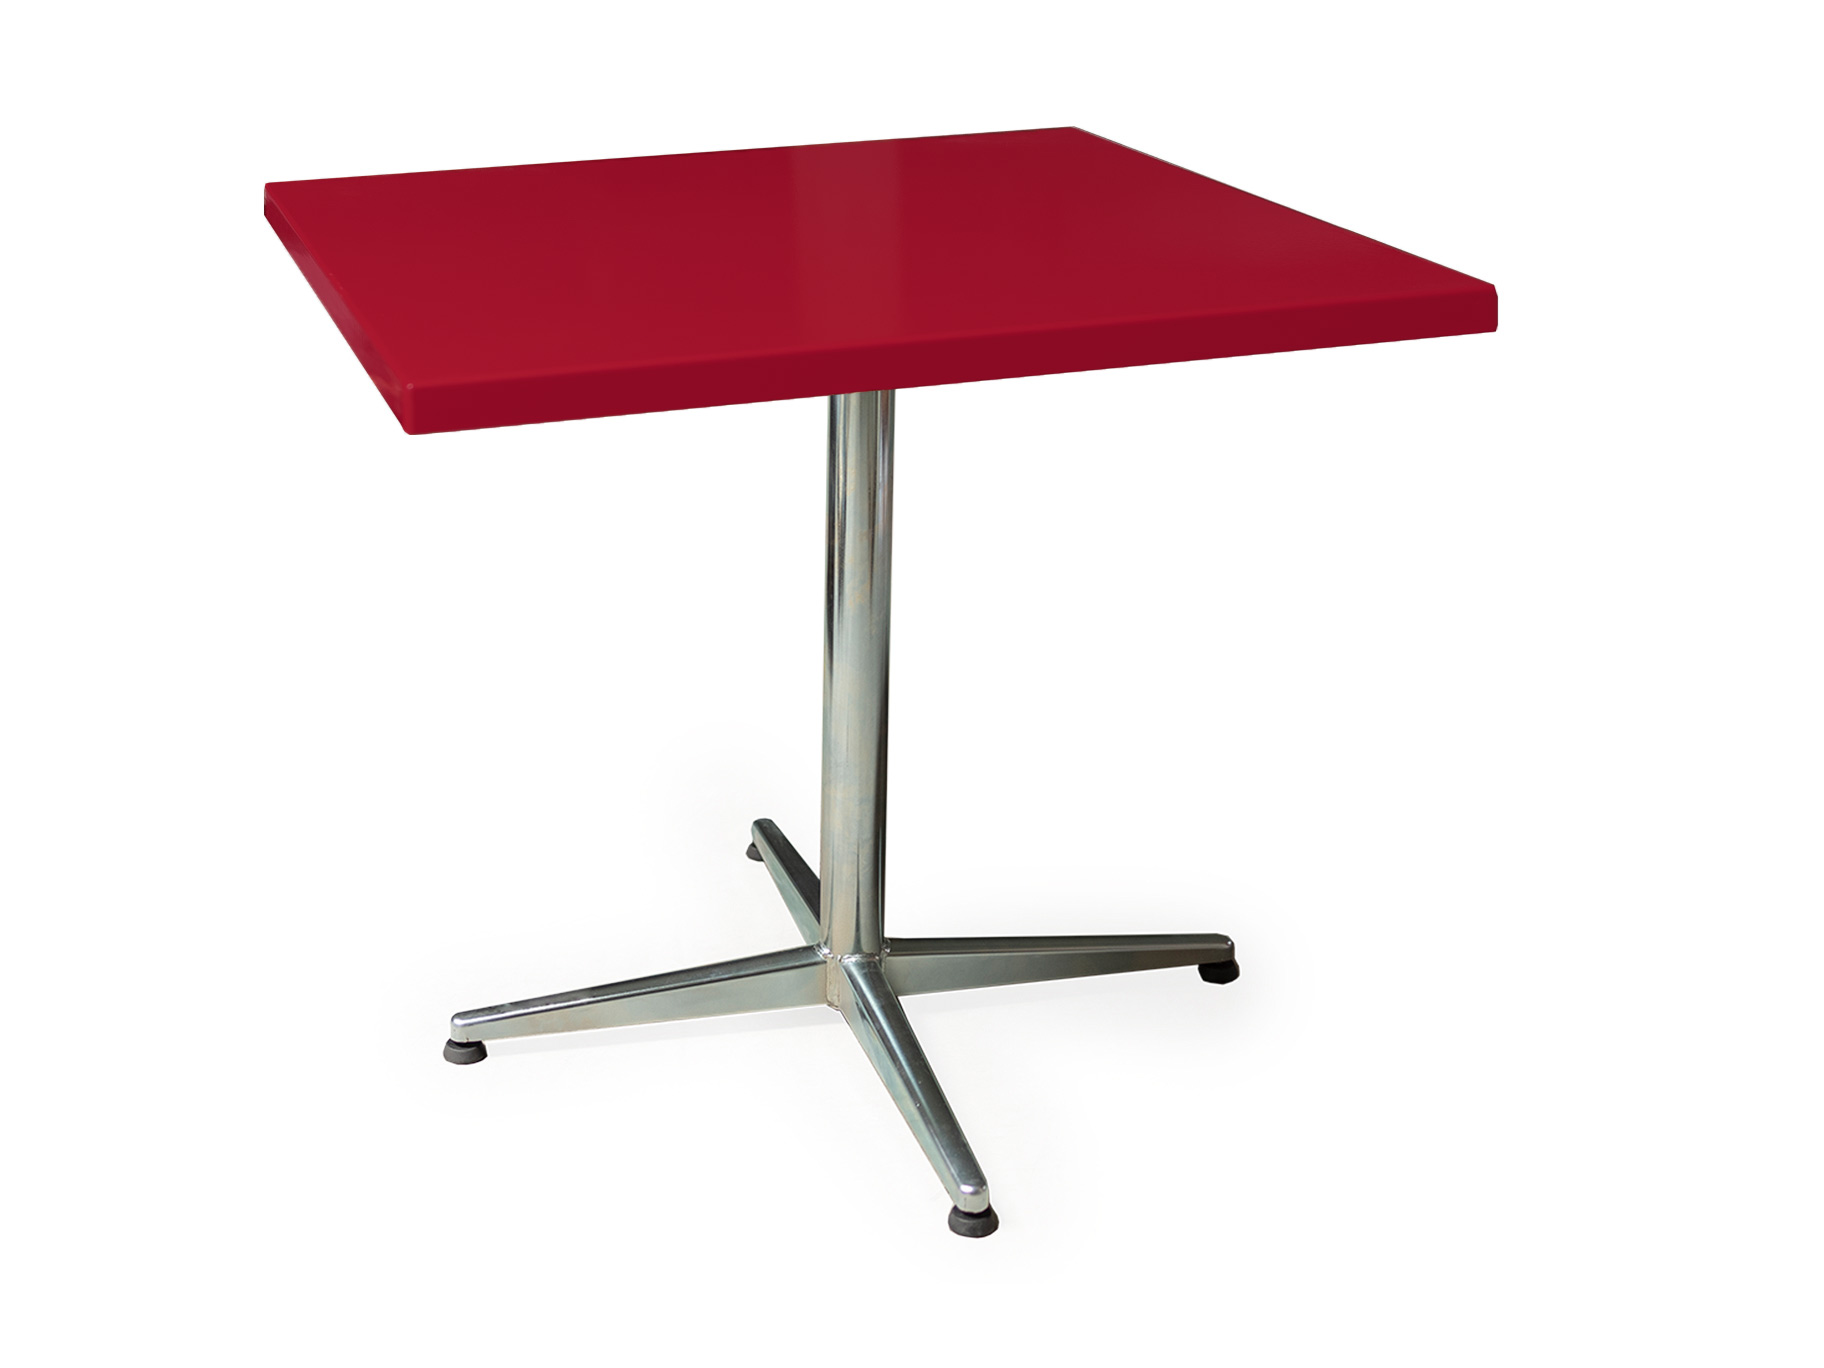 Table en PRV rouge rubis 80x80